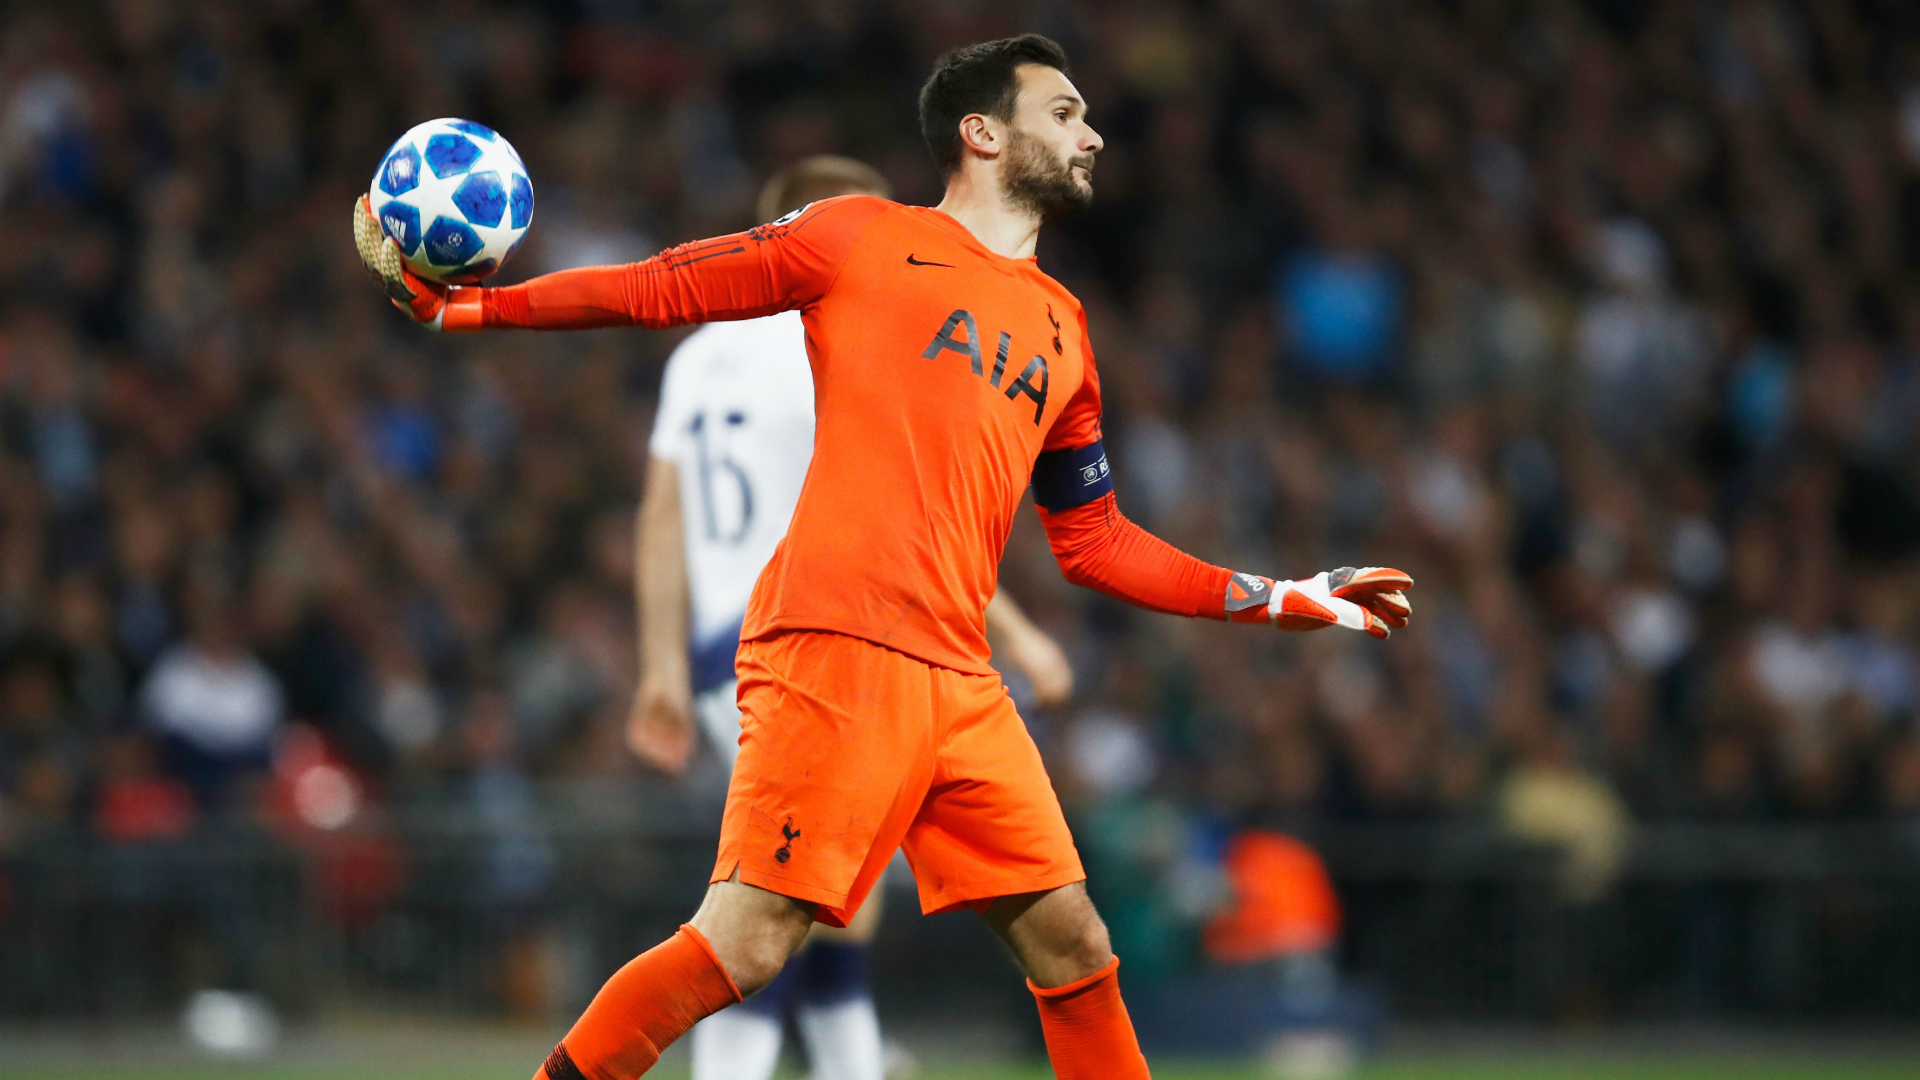 Baffling Hugo Lloris Mistake Gifts Barcelona The Perfect Start